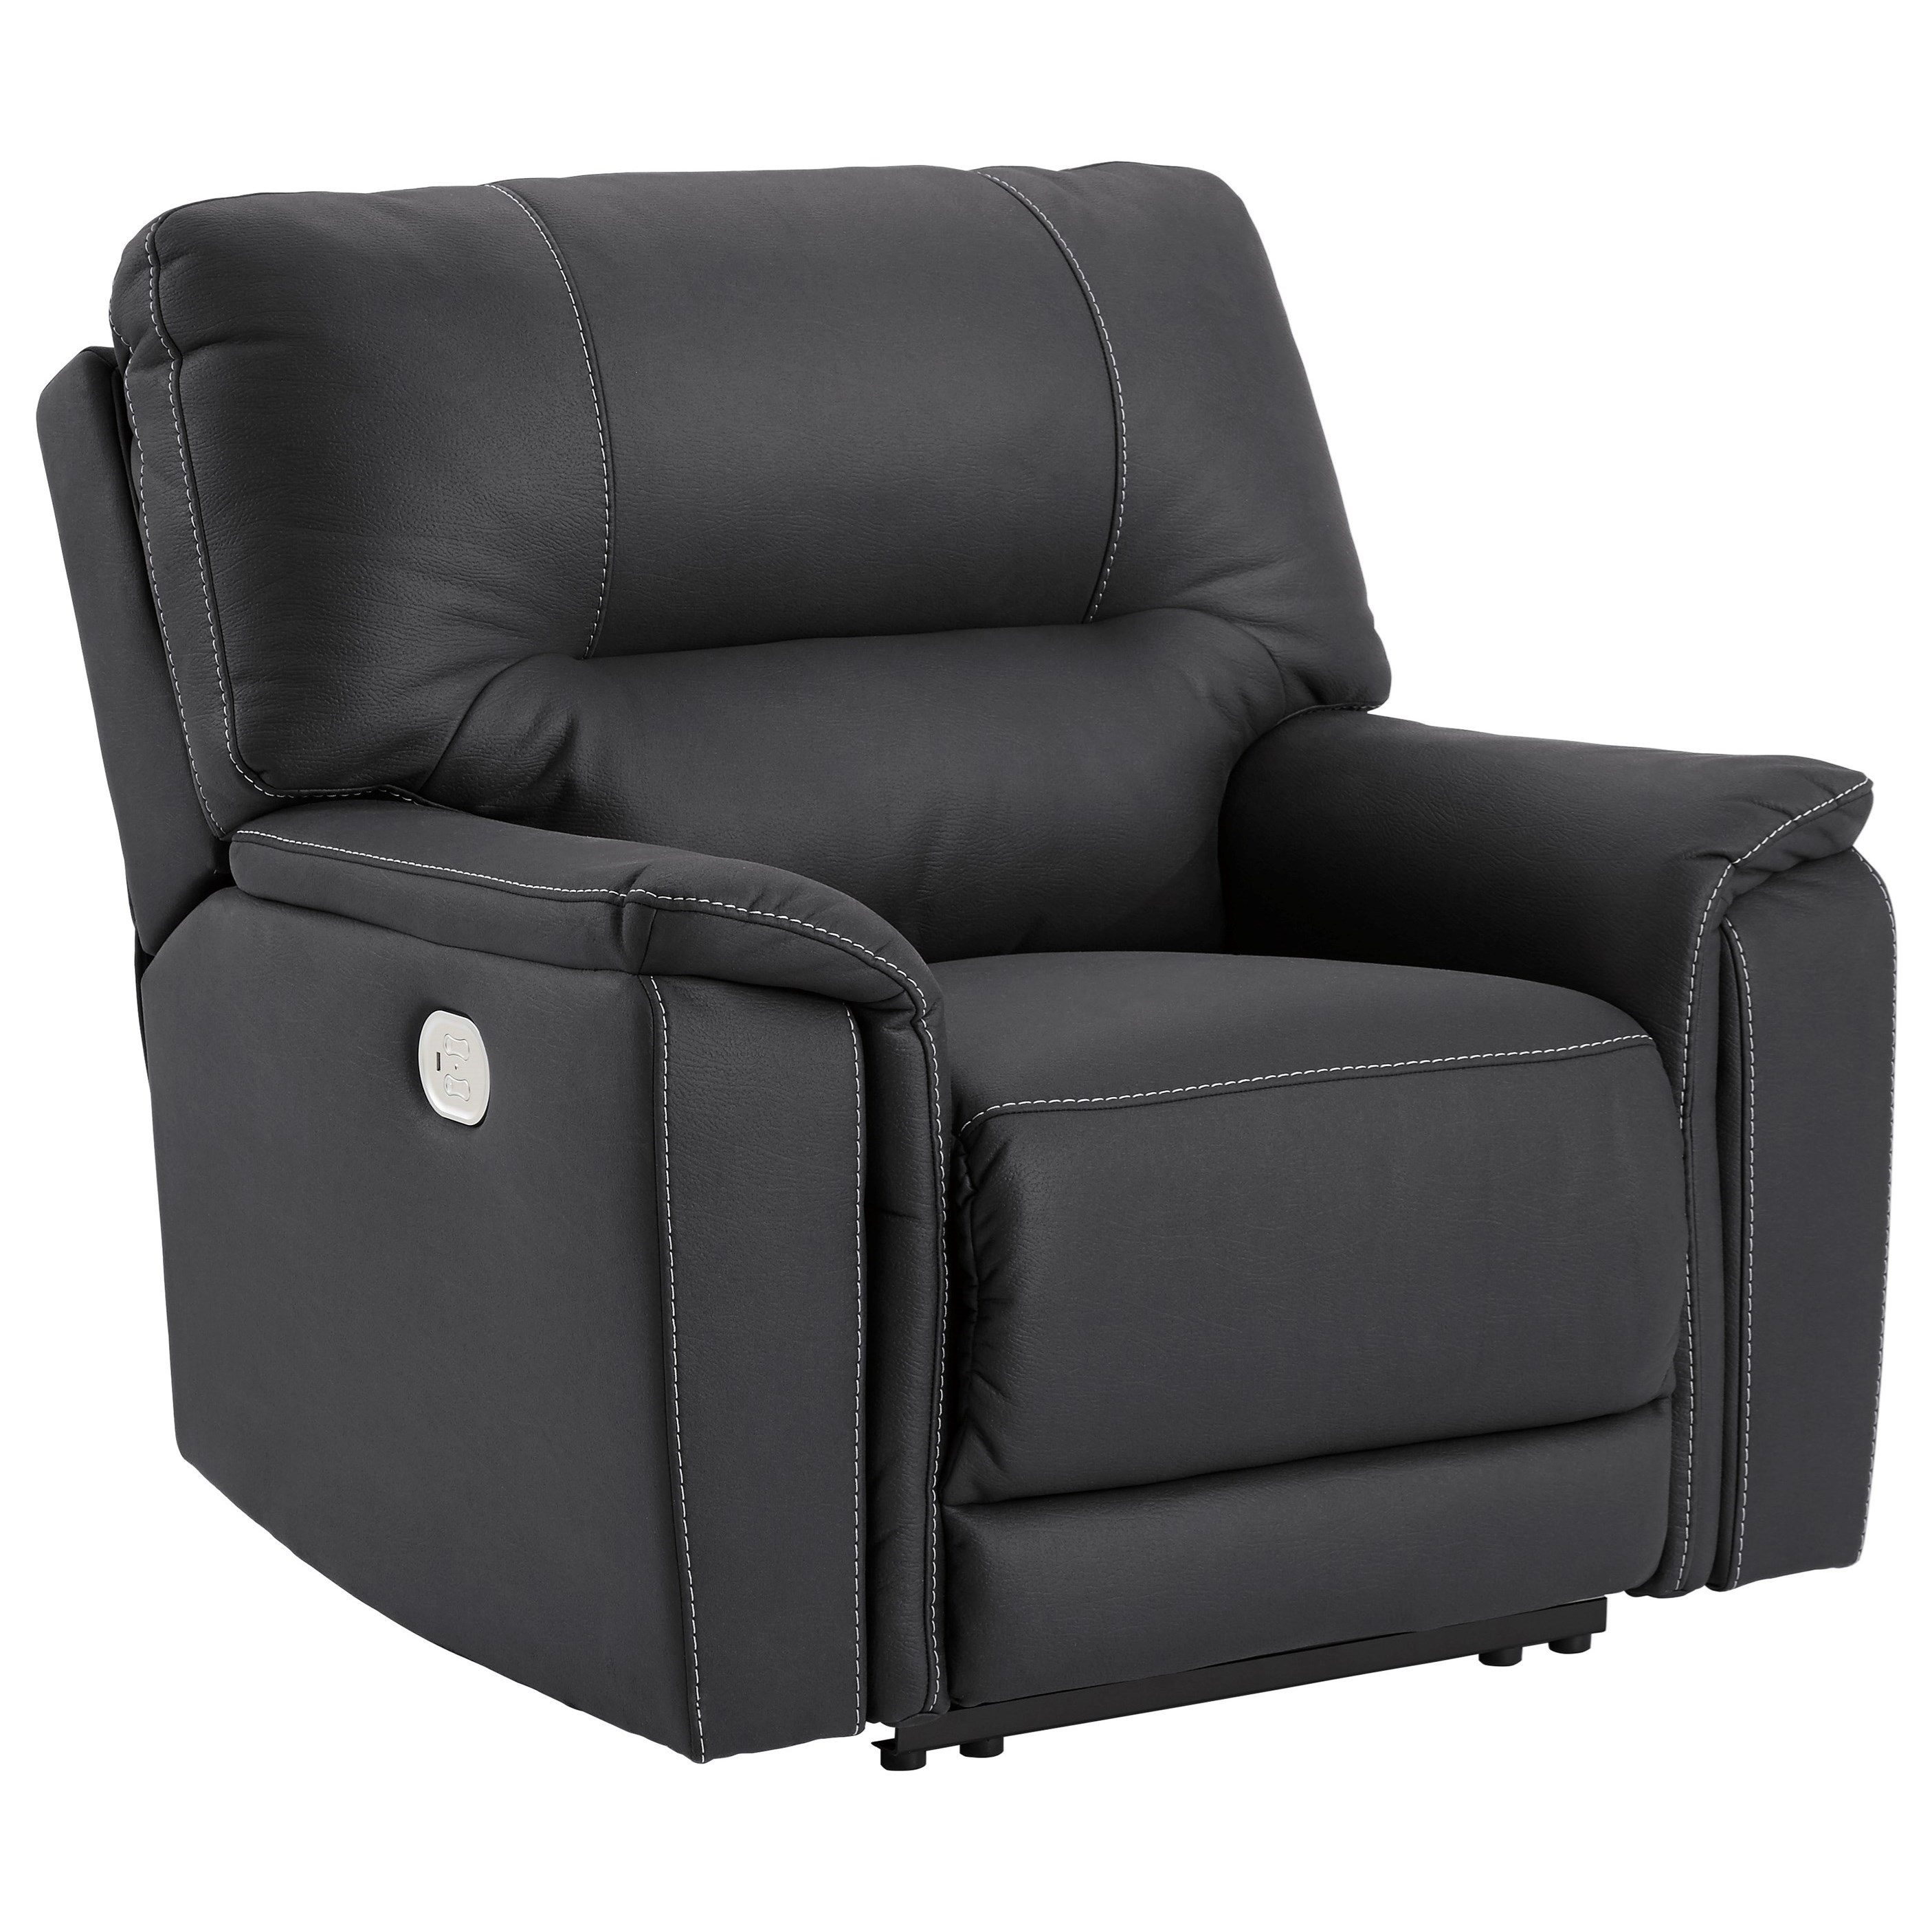 Henefer Power Recliner with Adjustable Headrest by Signature Design by Ashley at Northeast Factory Direct